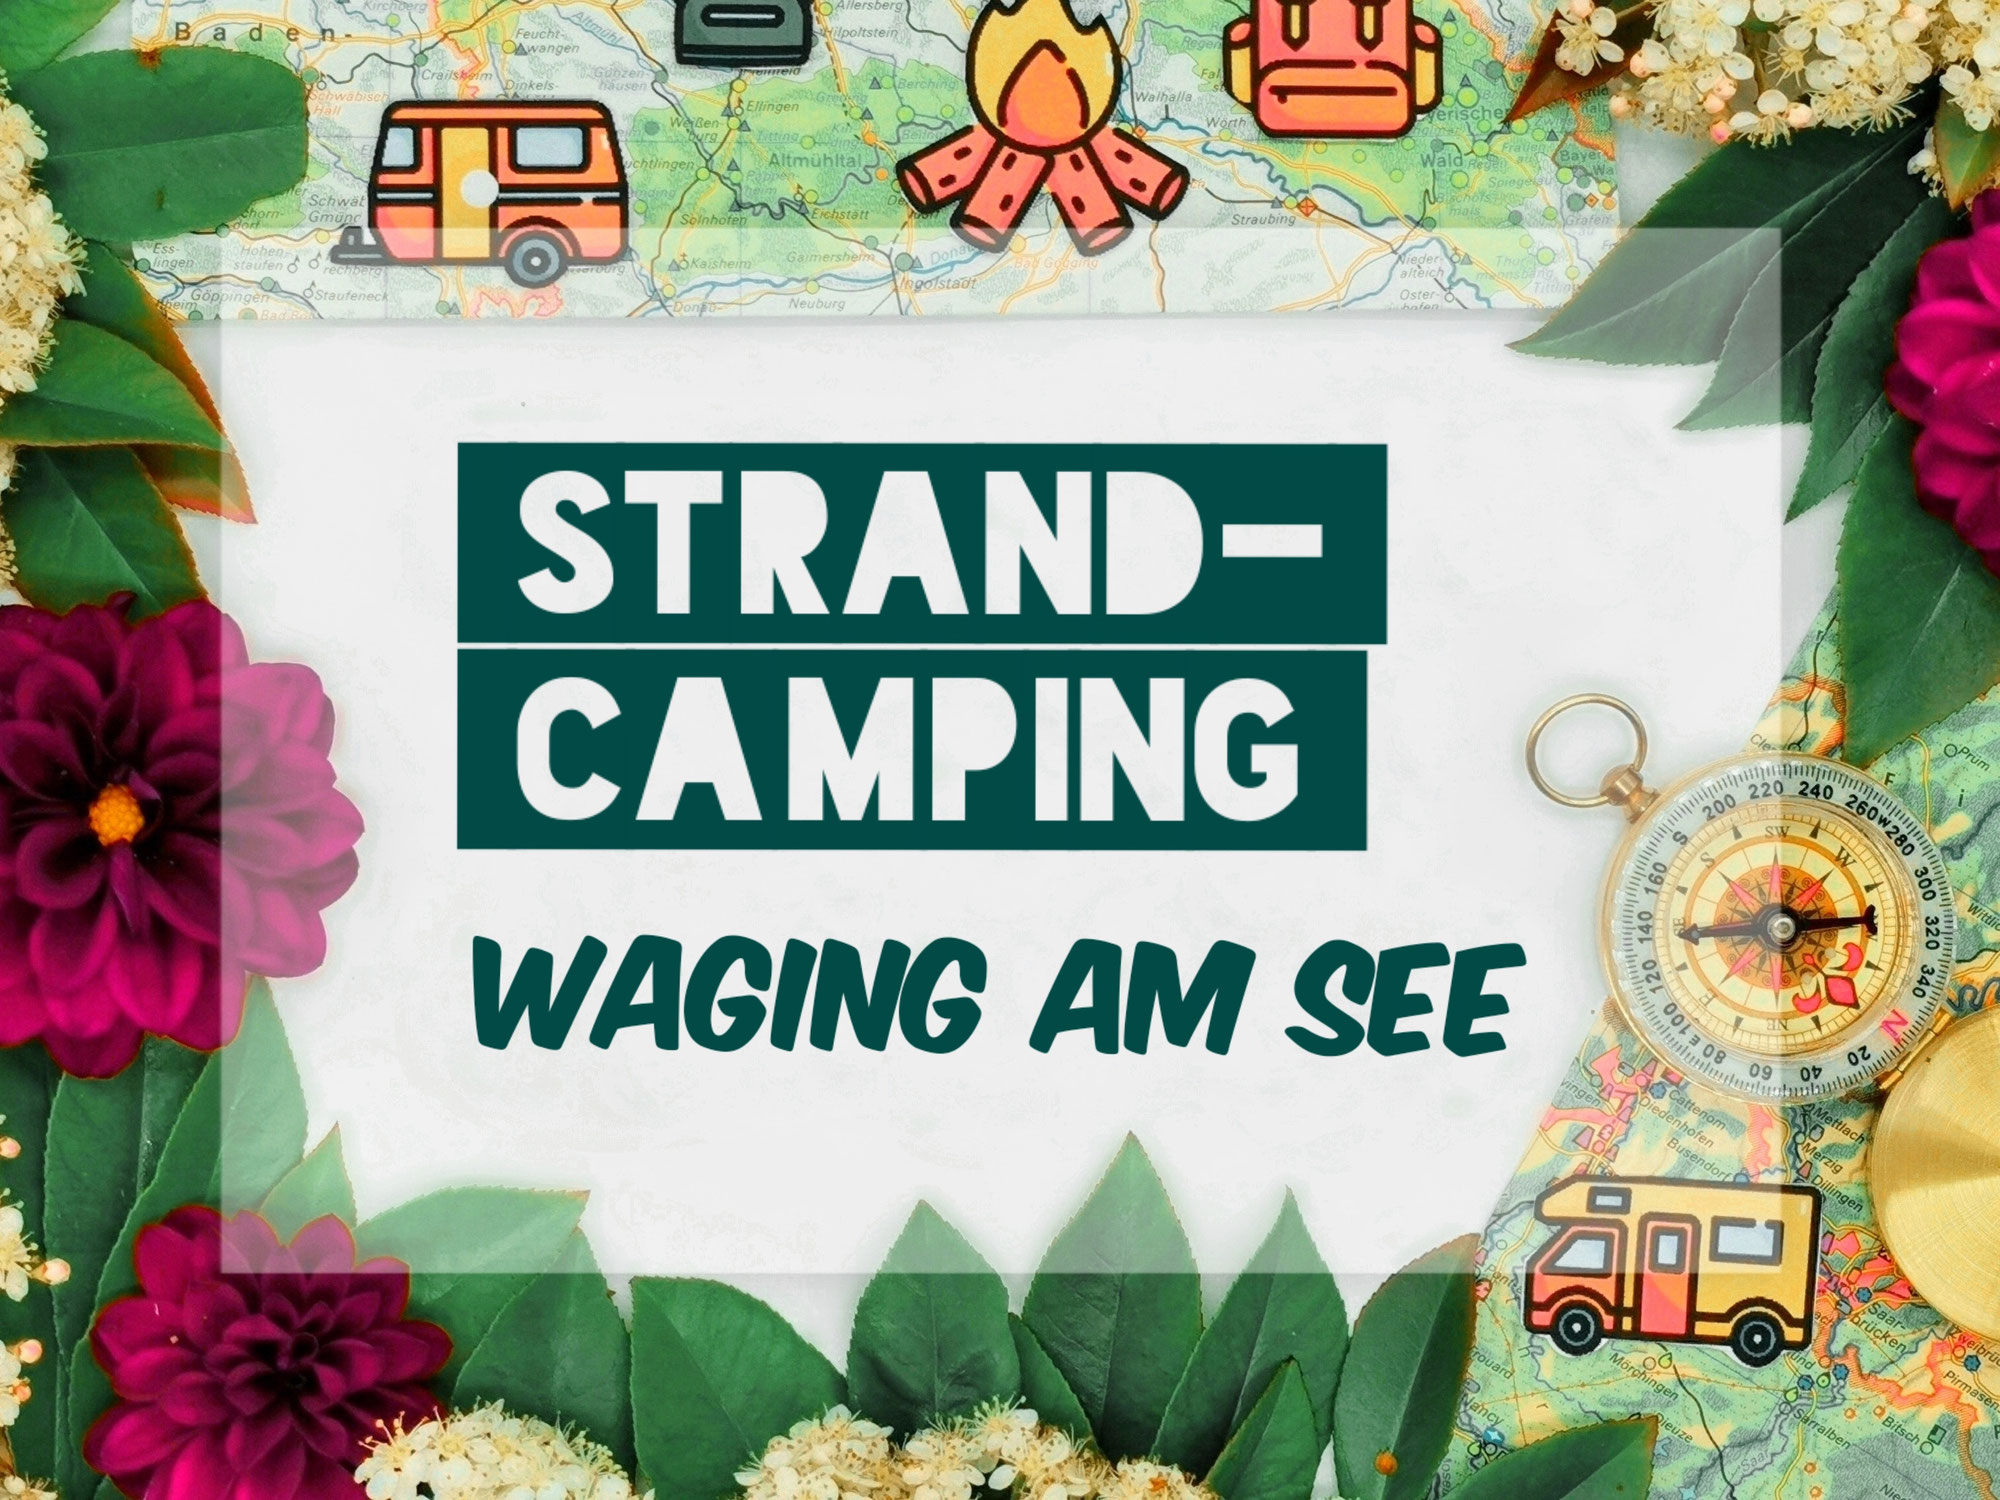 Strandcamping in Waging am See